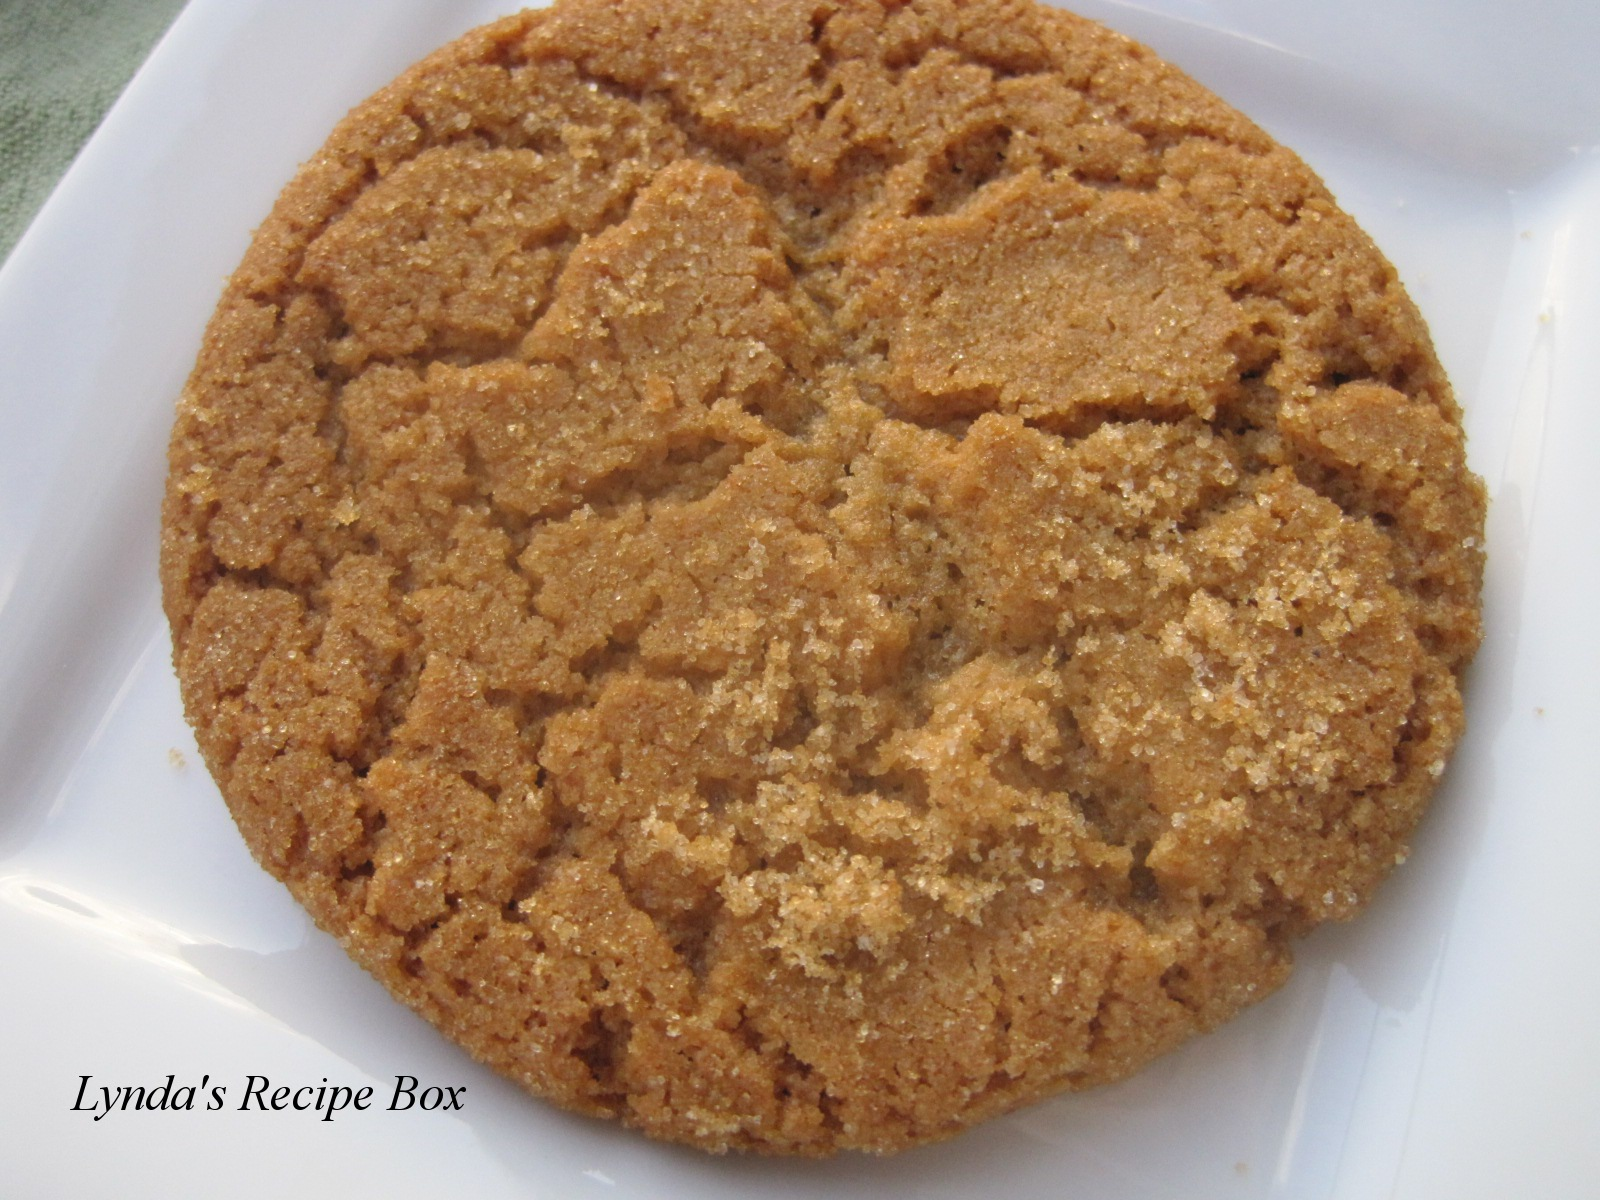 Lynda's Recipe Box: Brown Sugar Cookies